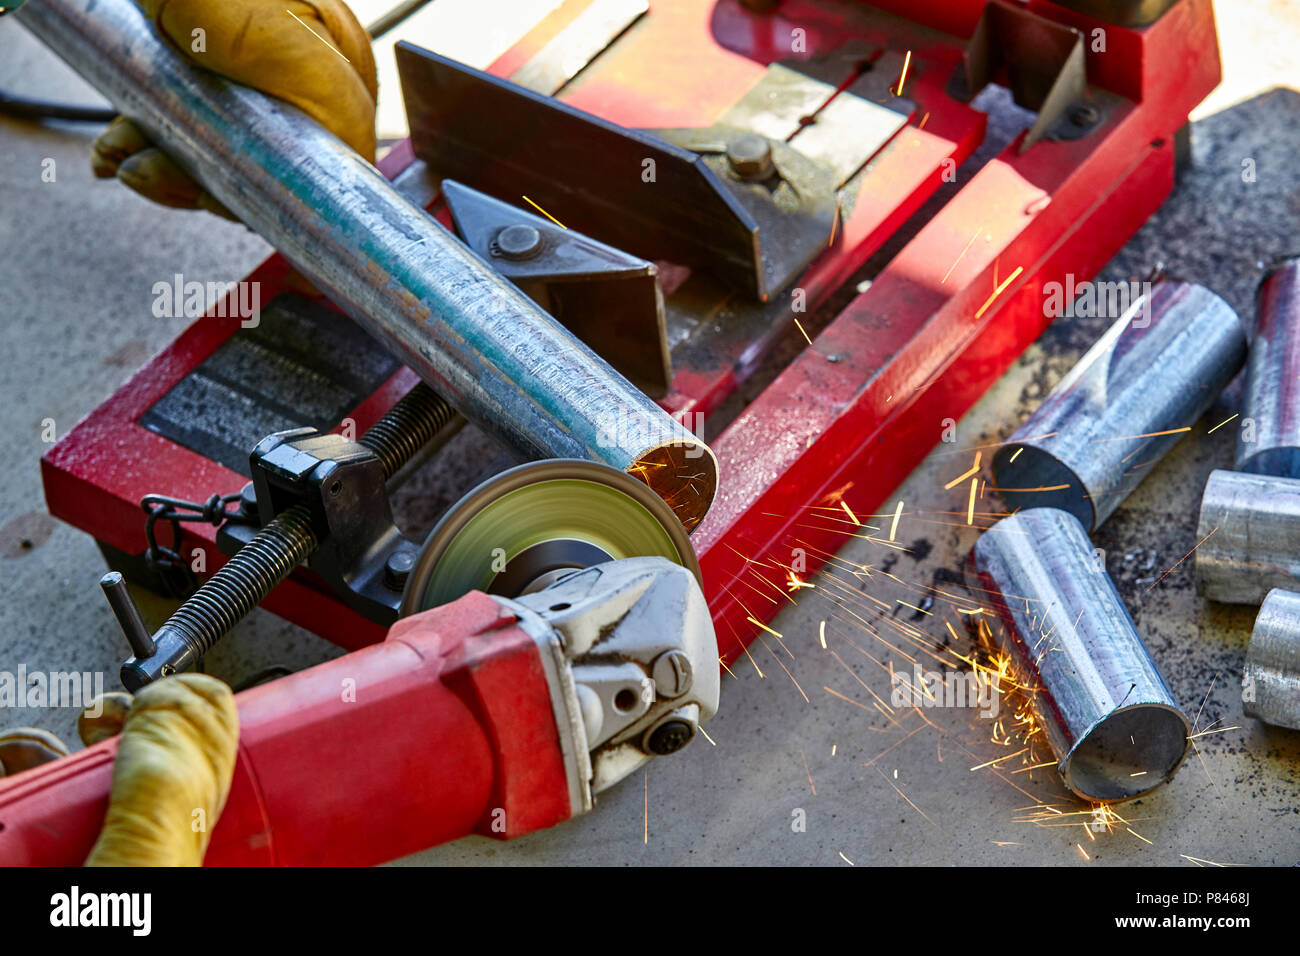 A construction worker using a grinder on a newly cut galvanized steel pipe - Stock Image